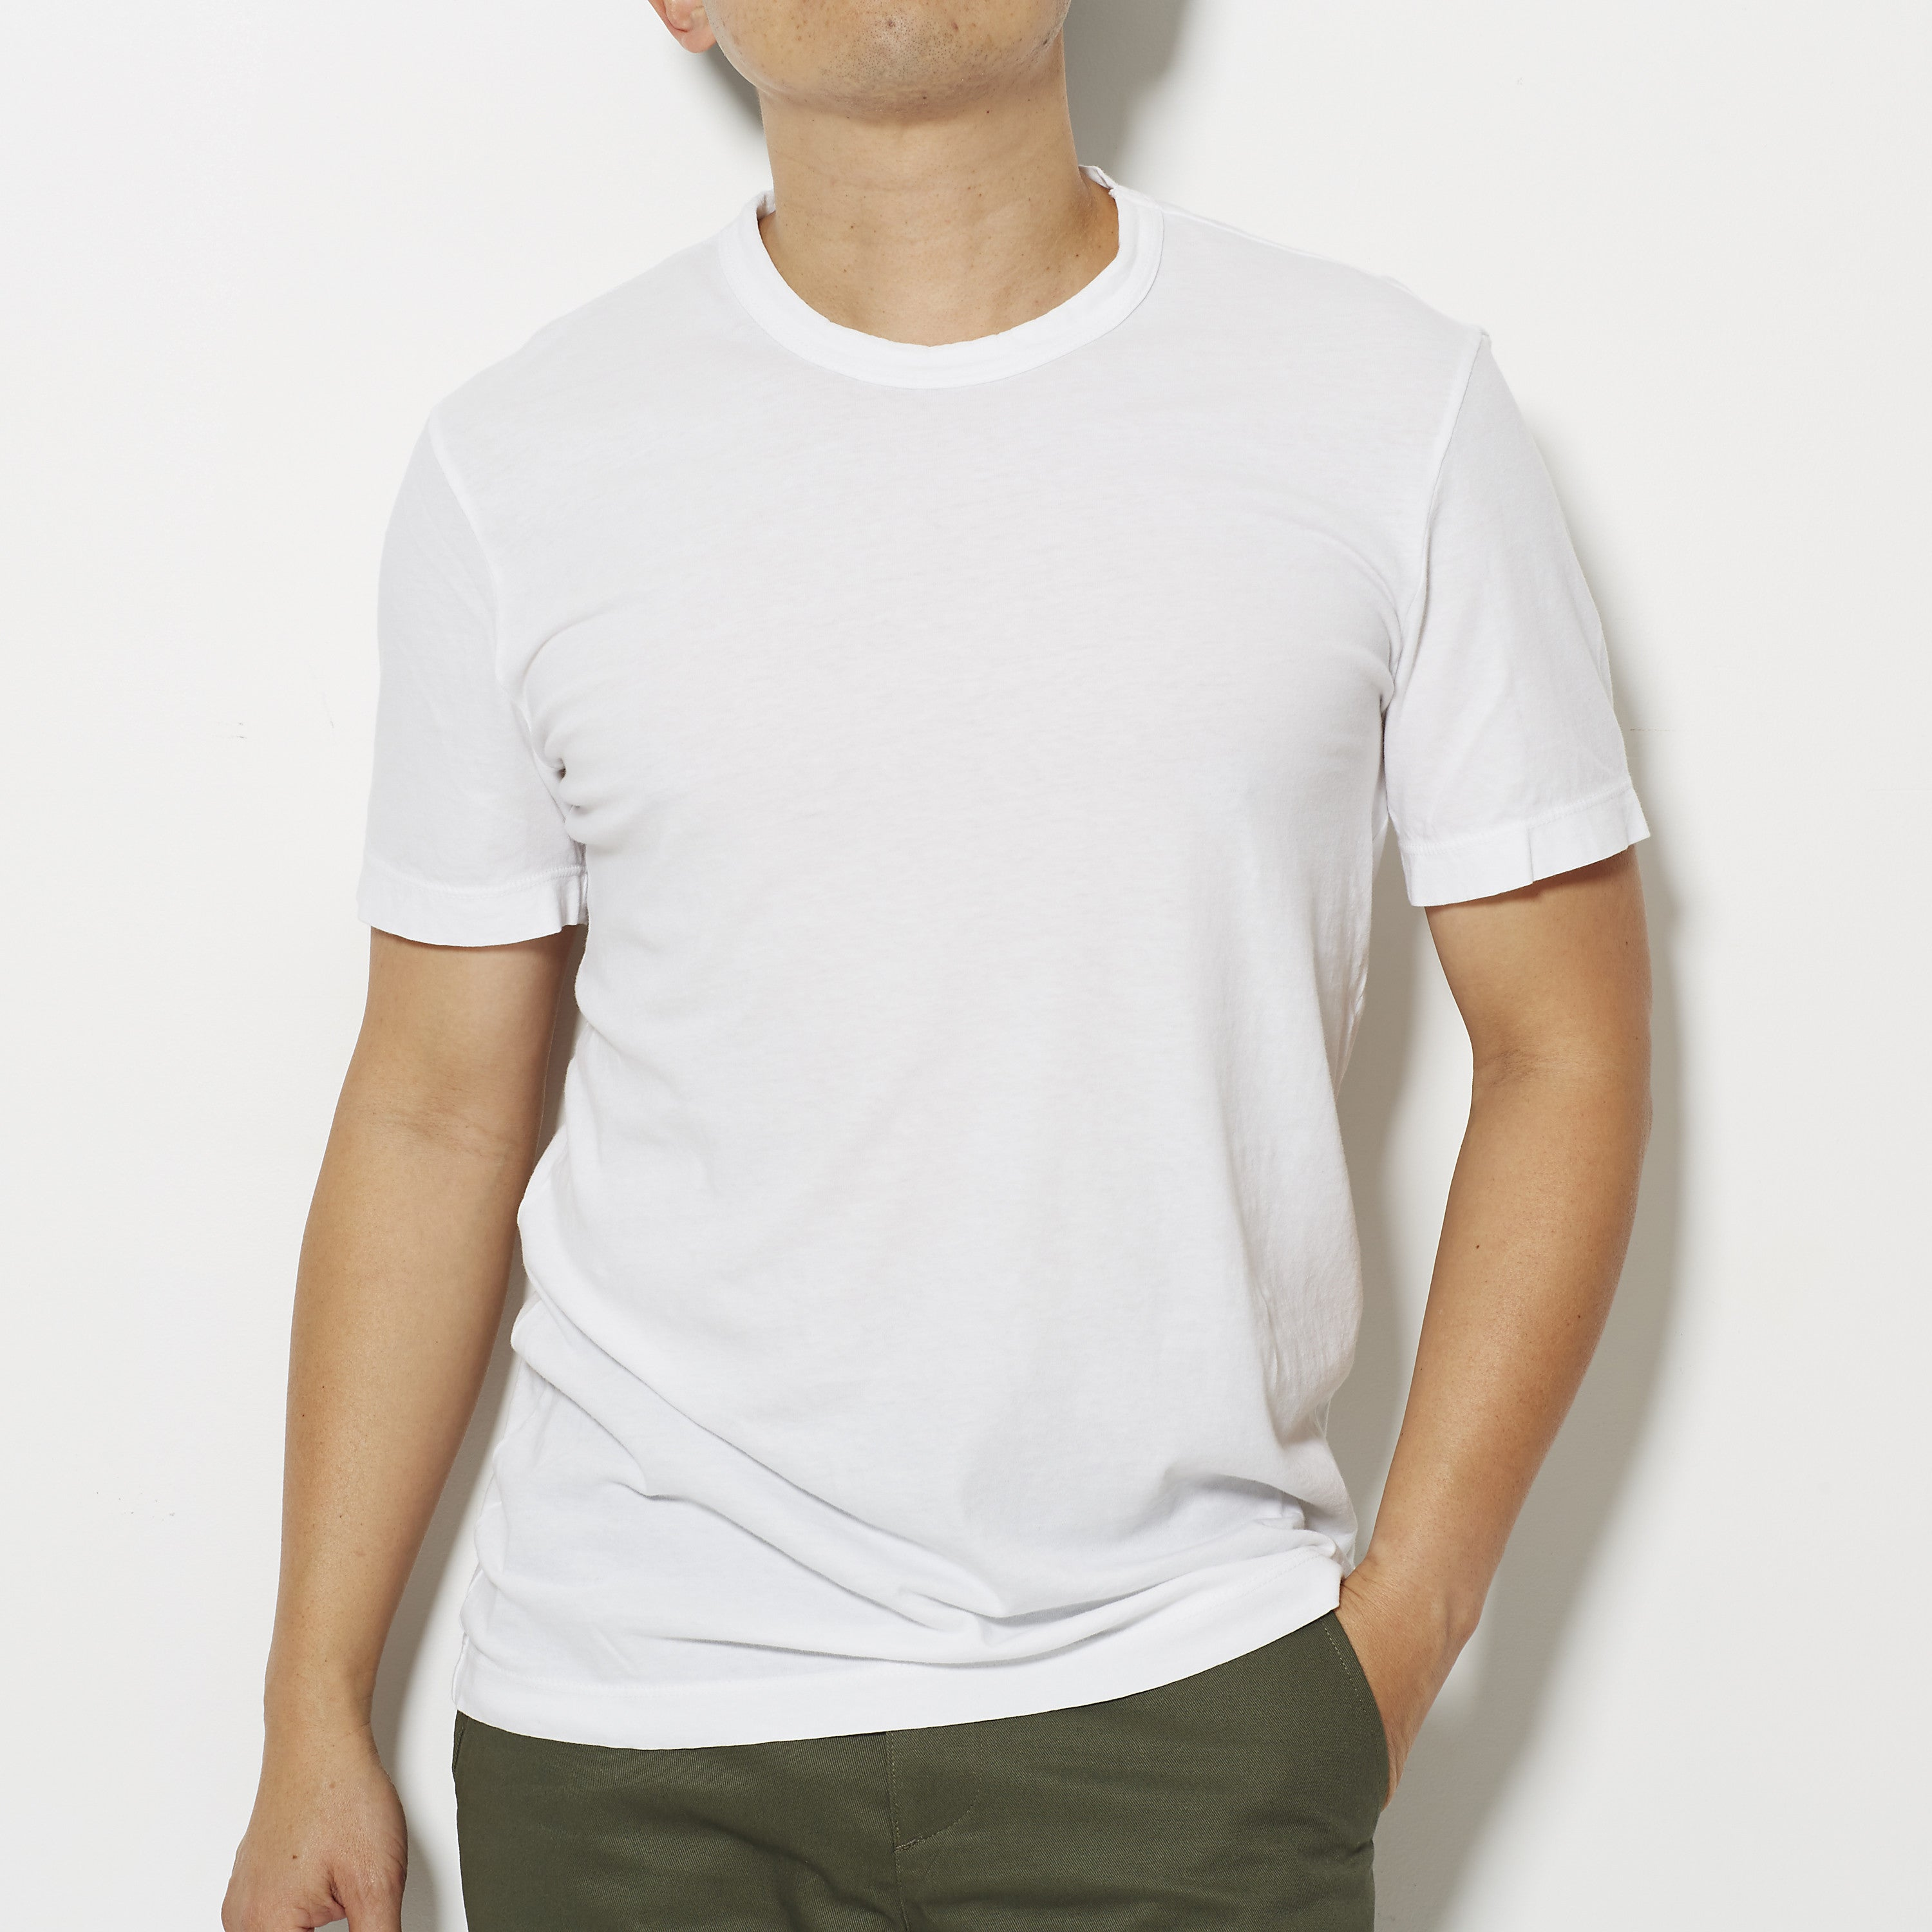 101aacf3bc0 James Perse Men's Short Sleeve Crew Neck T-Shirt - White – Footage